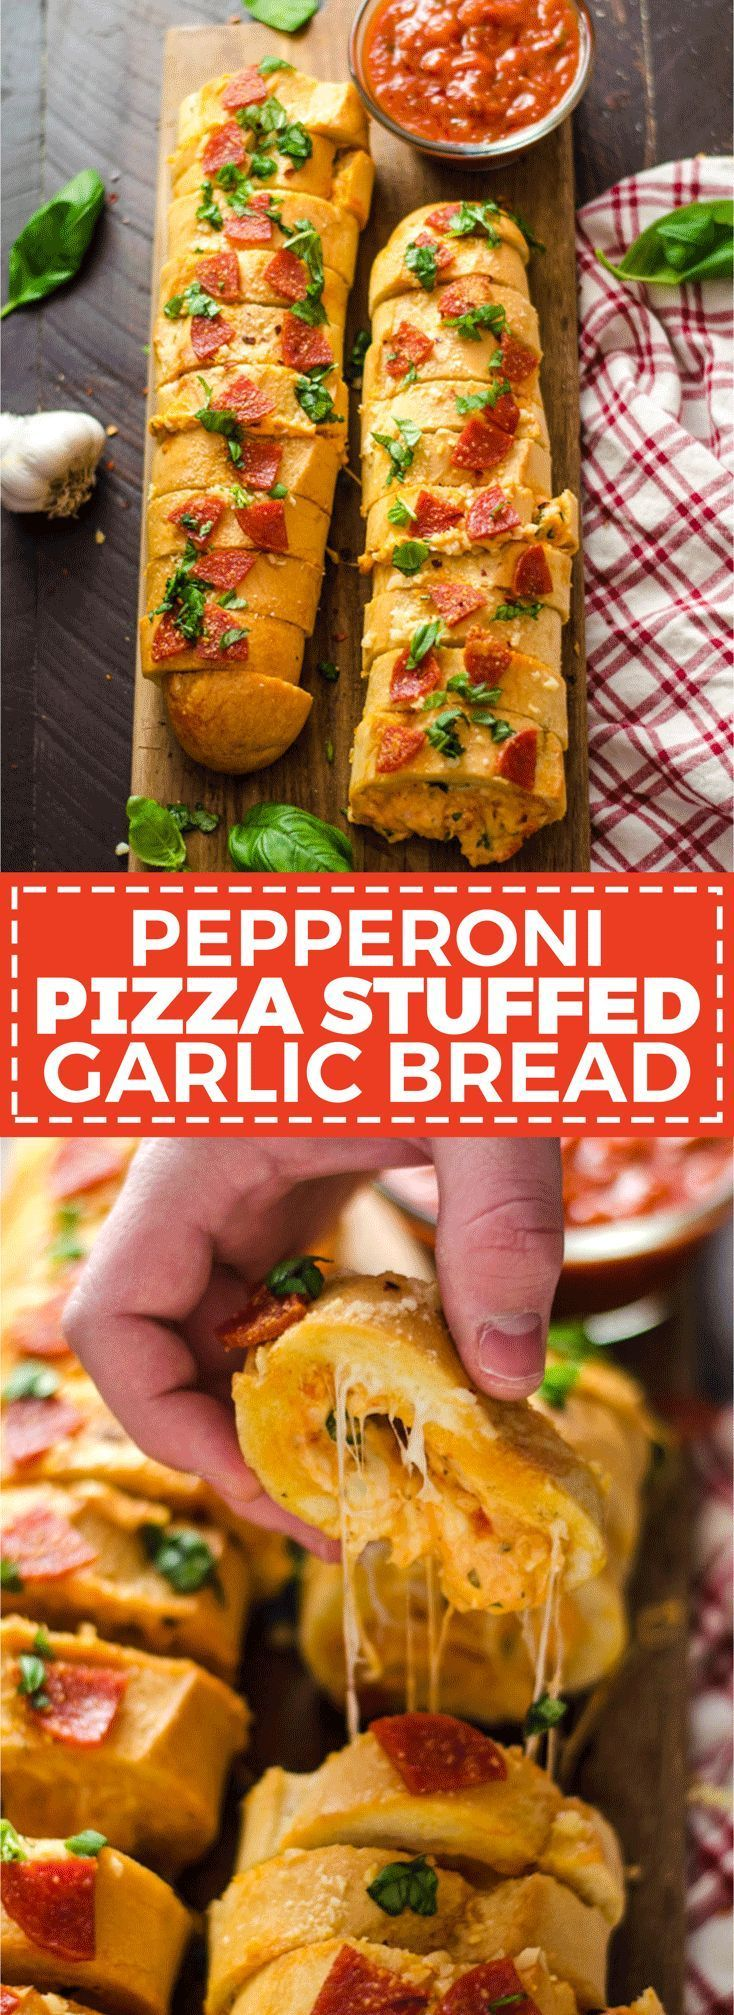 11499 Best Foodprettygirlsgolf Images On Pinterest Cooking Food Holiday Series Hawaii Breeze 200ml Pepperoni Pizza Stuffed Garlic Bread A Cheesy Tomato Sauce Spiked Dip Gets Packed